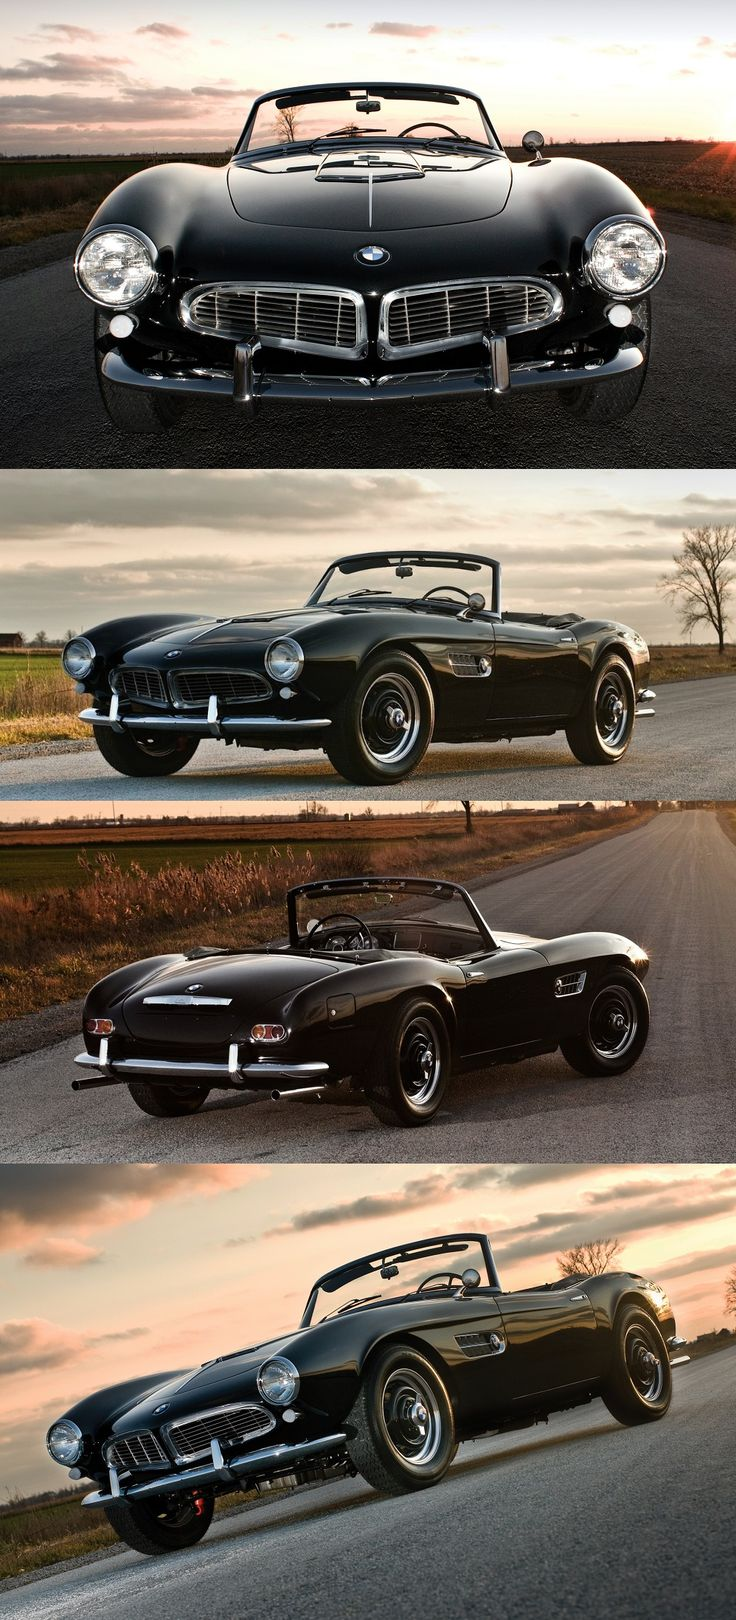 The Vintage BMW 507 Roadster History The BMW 507 2 doors roadster is a very special and extremely unique sports car